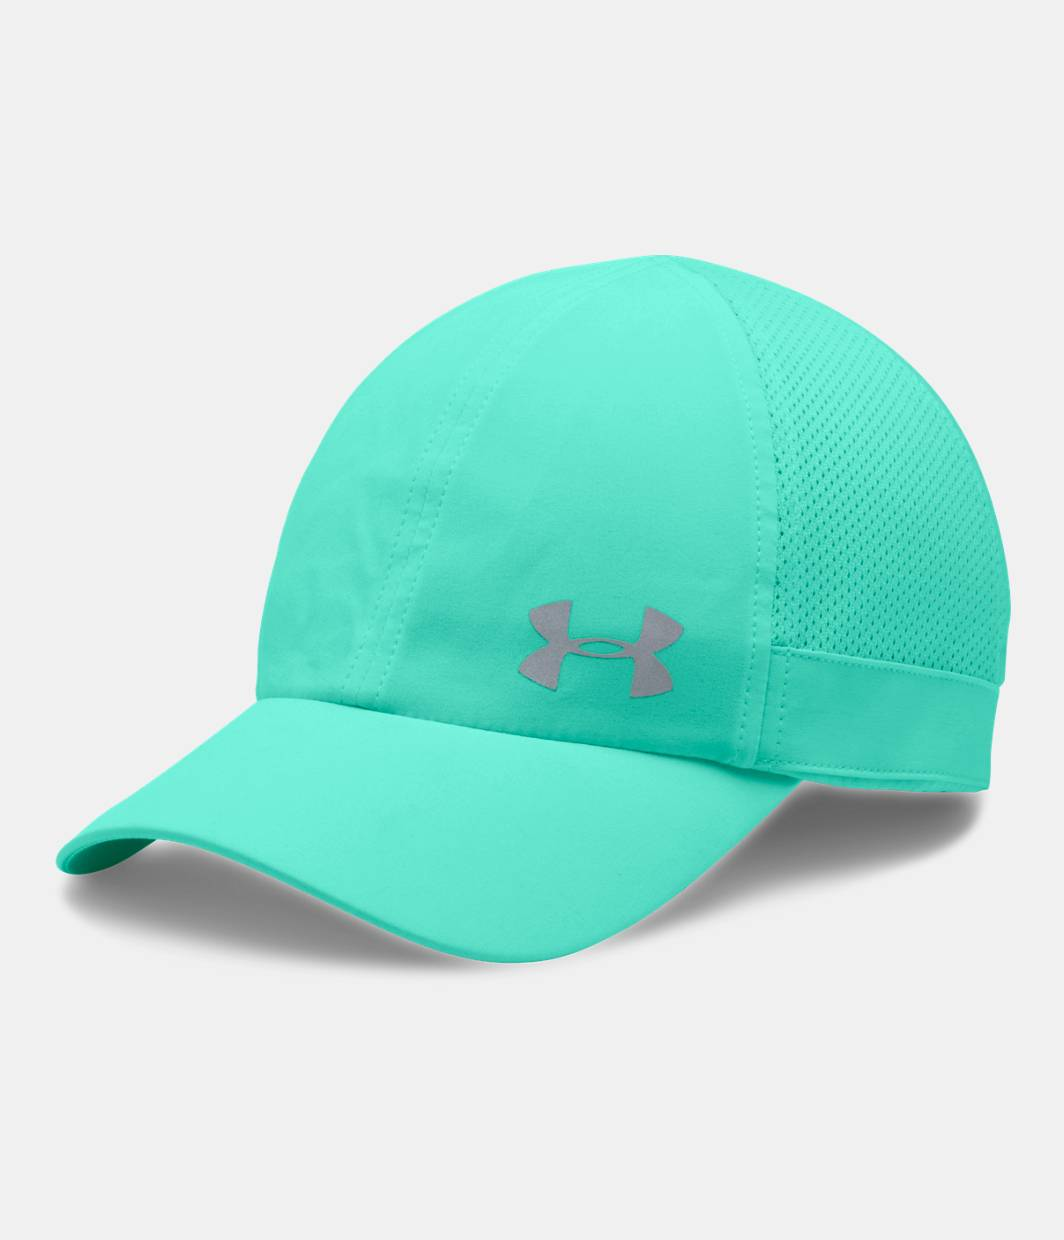 Tanger Outlets Under Armour hat